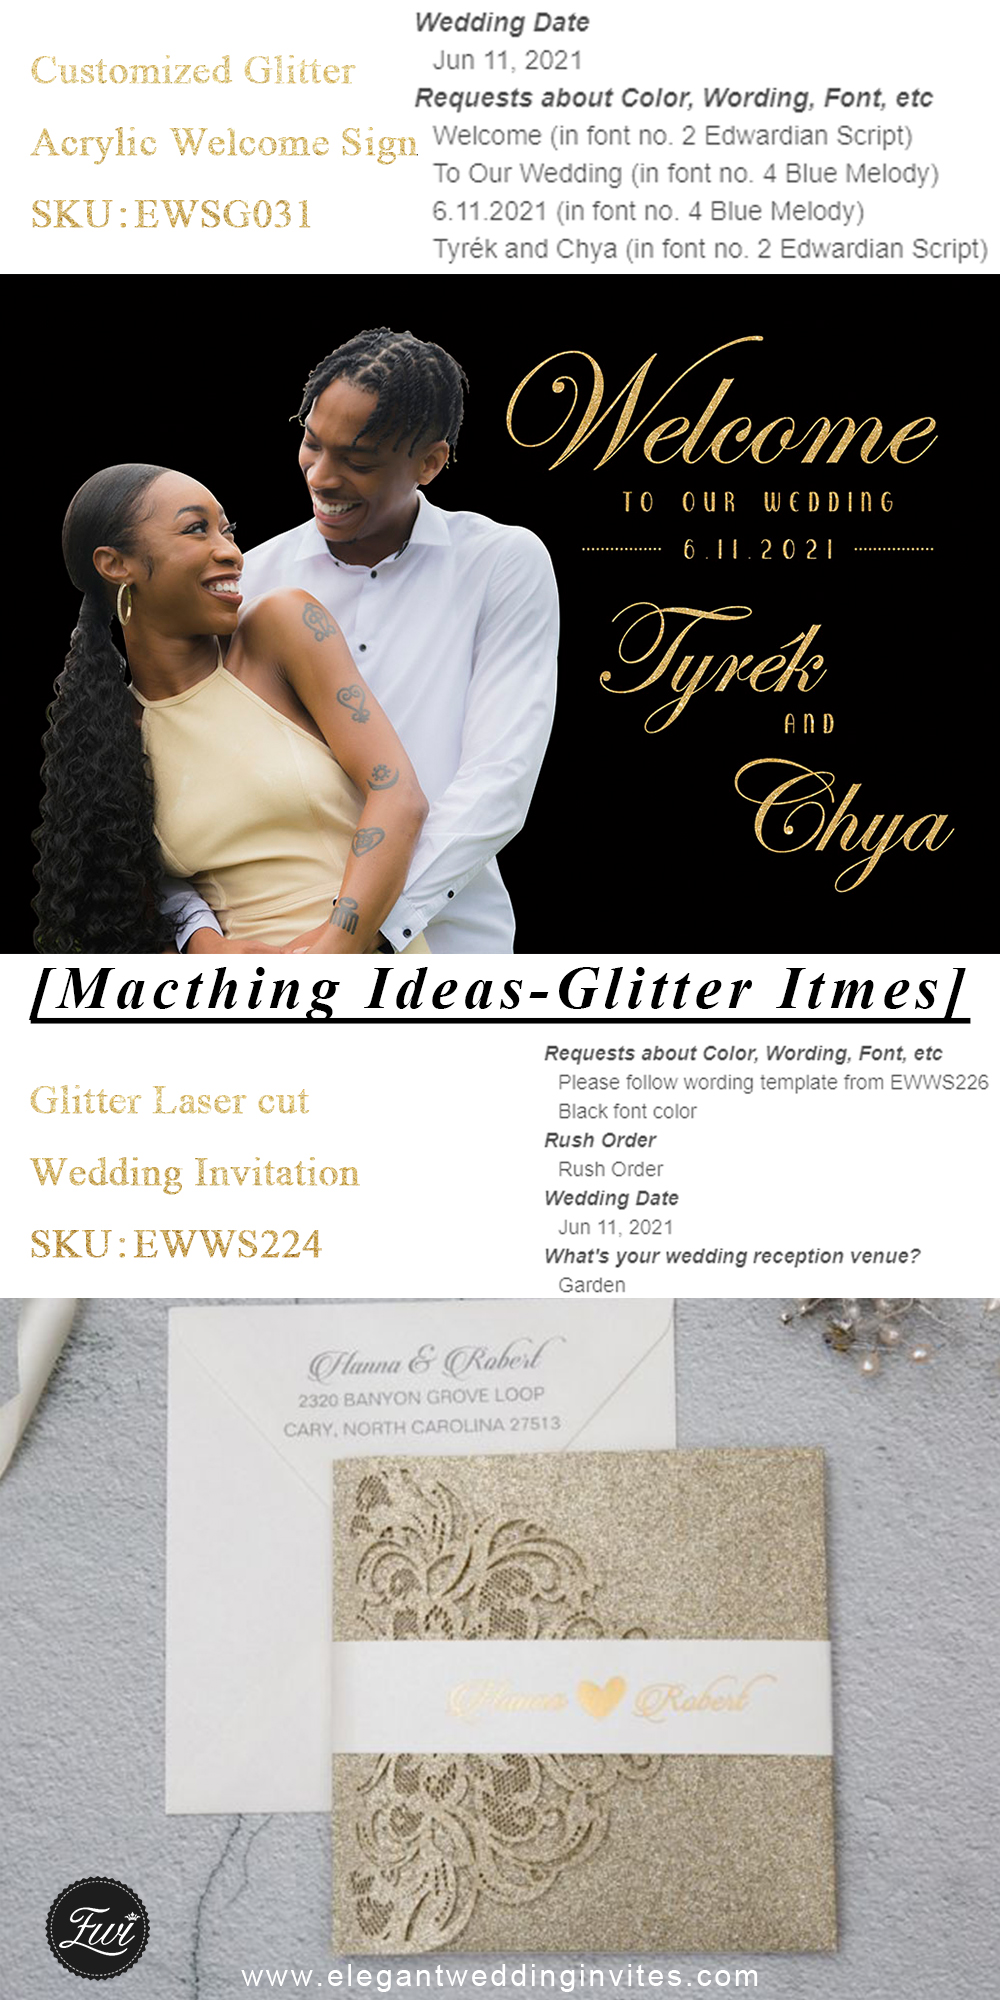 customized glitter wedding invitations and signs for luxury wedding ideas